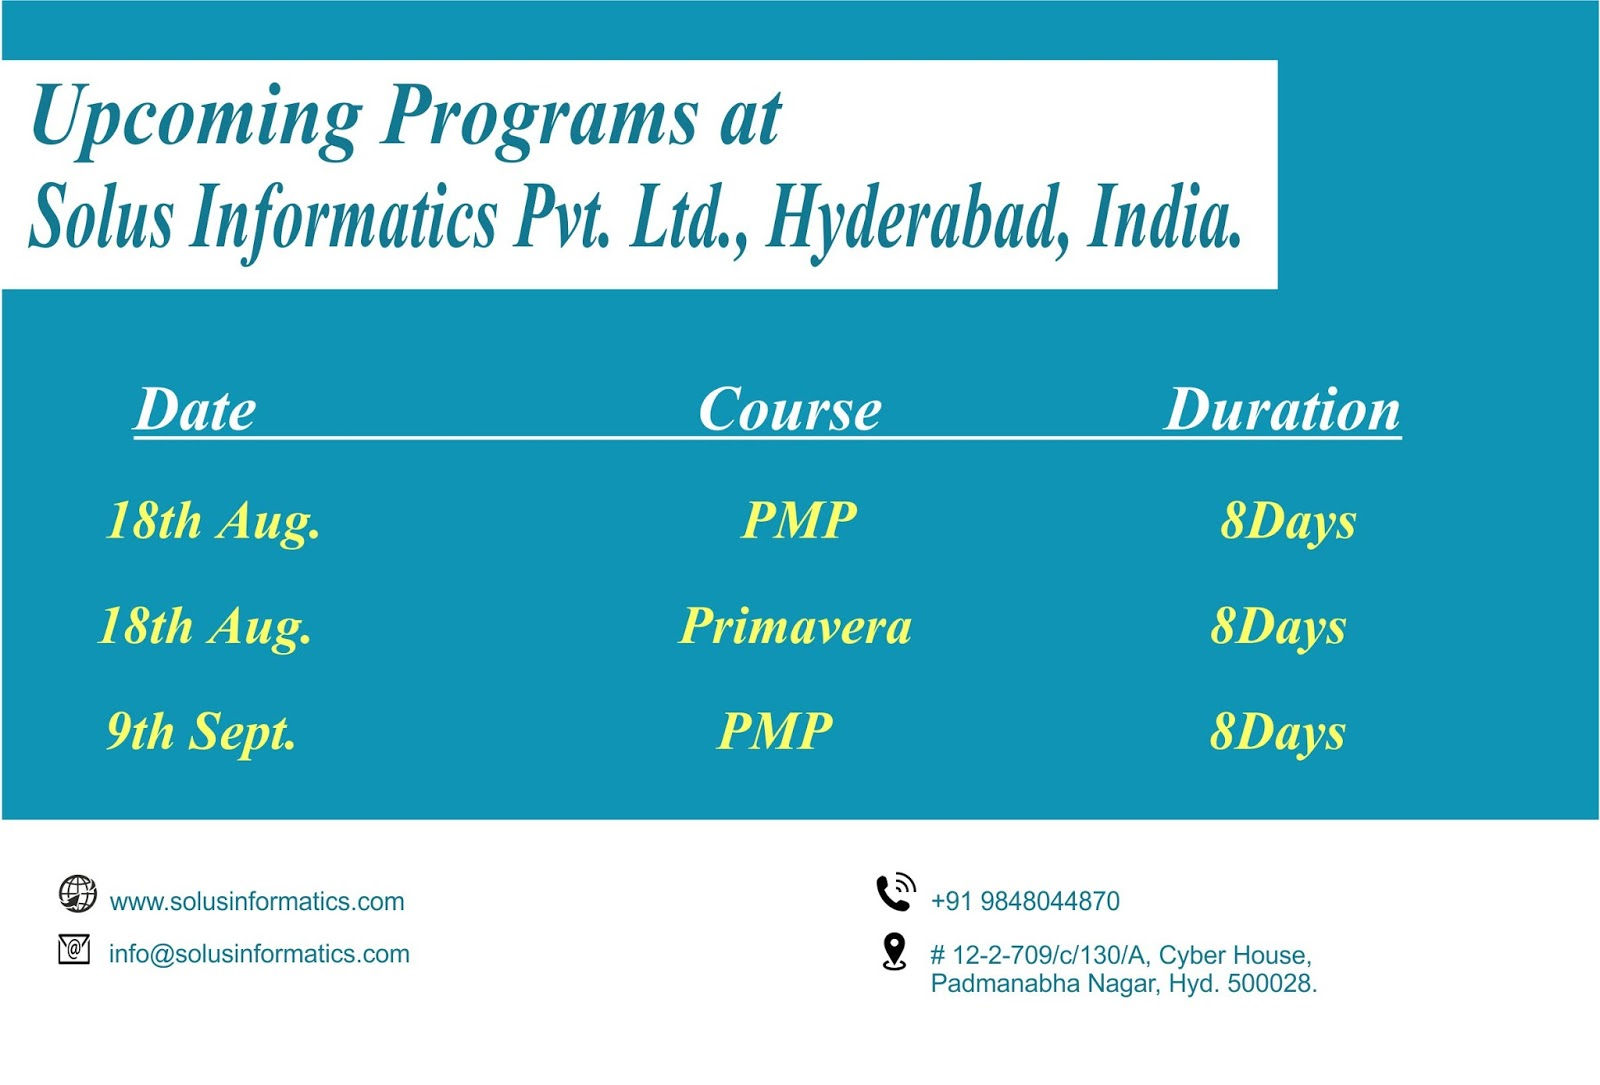 Pmp certification training dubai project management kuwait riyad scheduled for upcoming training programs at solus informatics pvt ltd in hyderabad india 1betcityfo Gallery